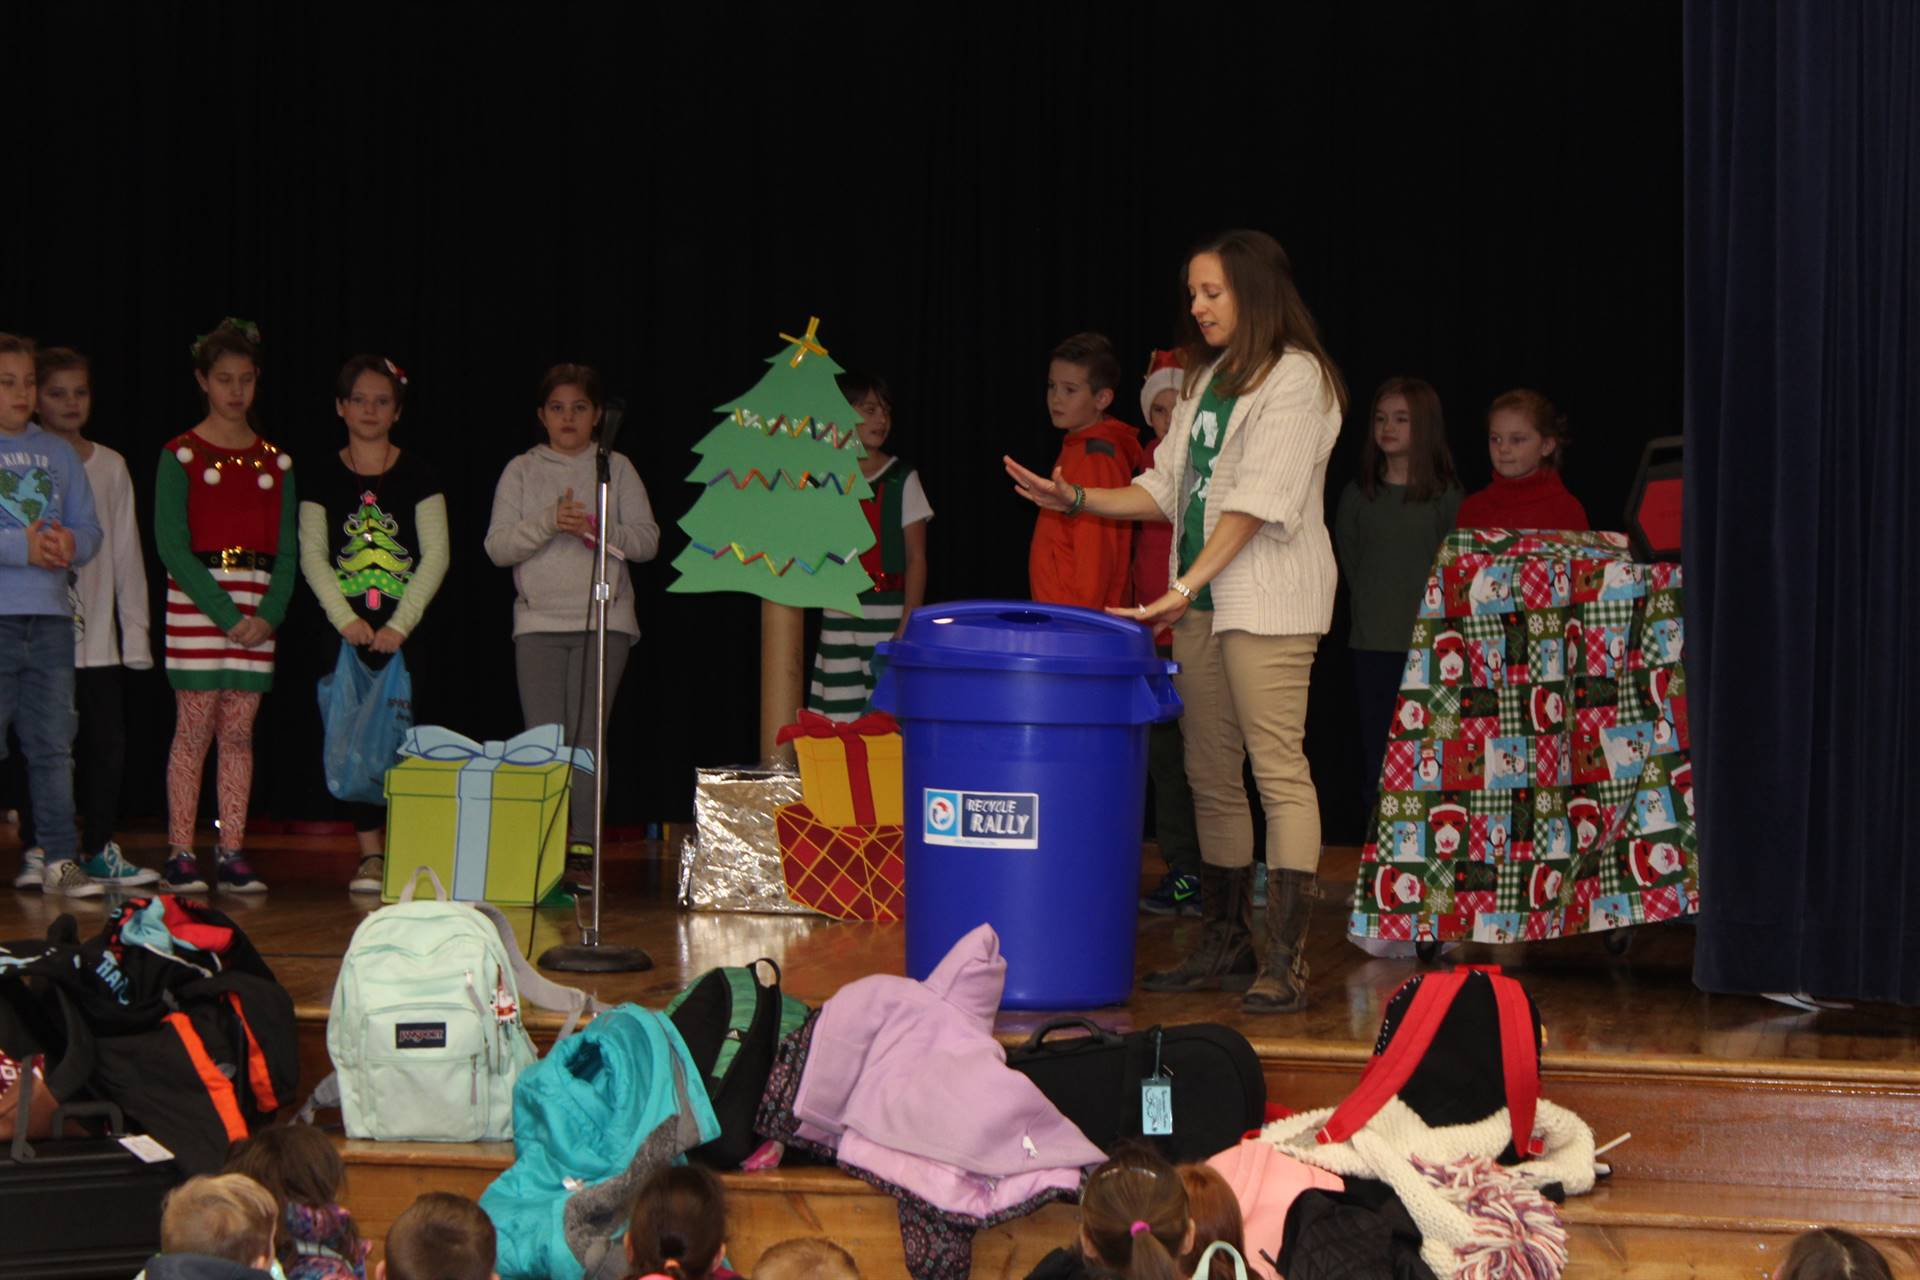 Mrs. Williams showing off the recycling container